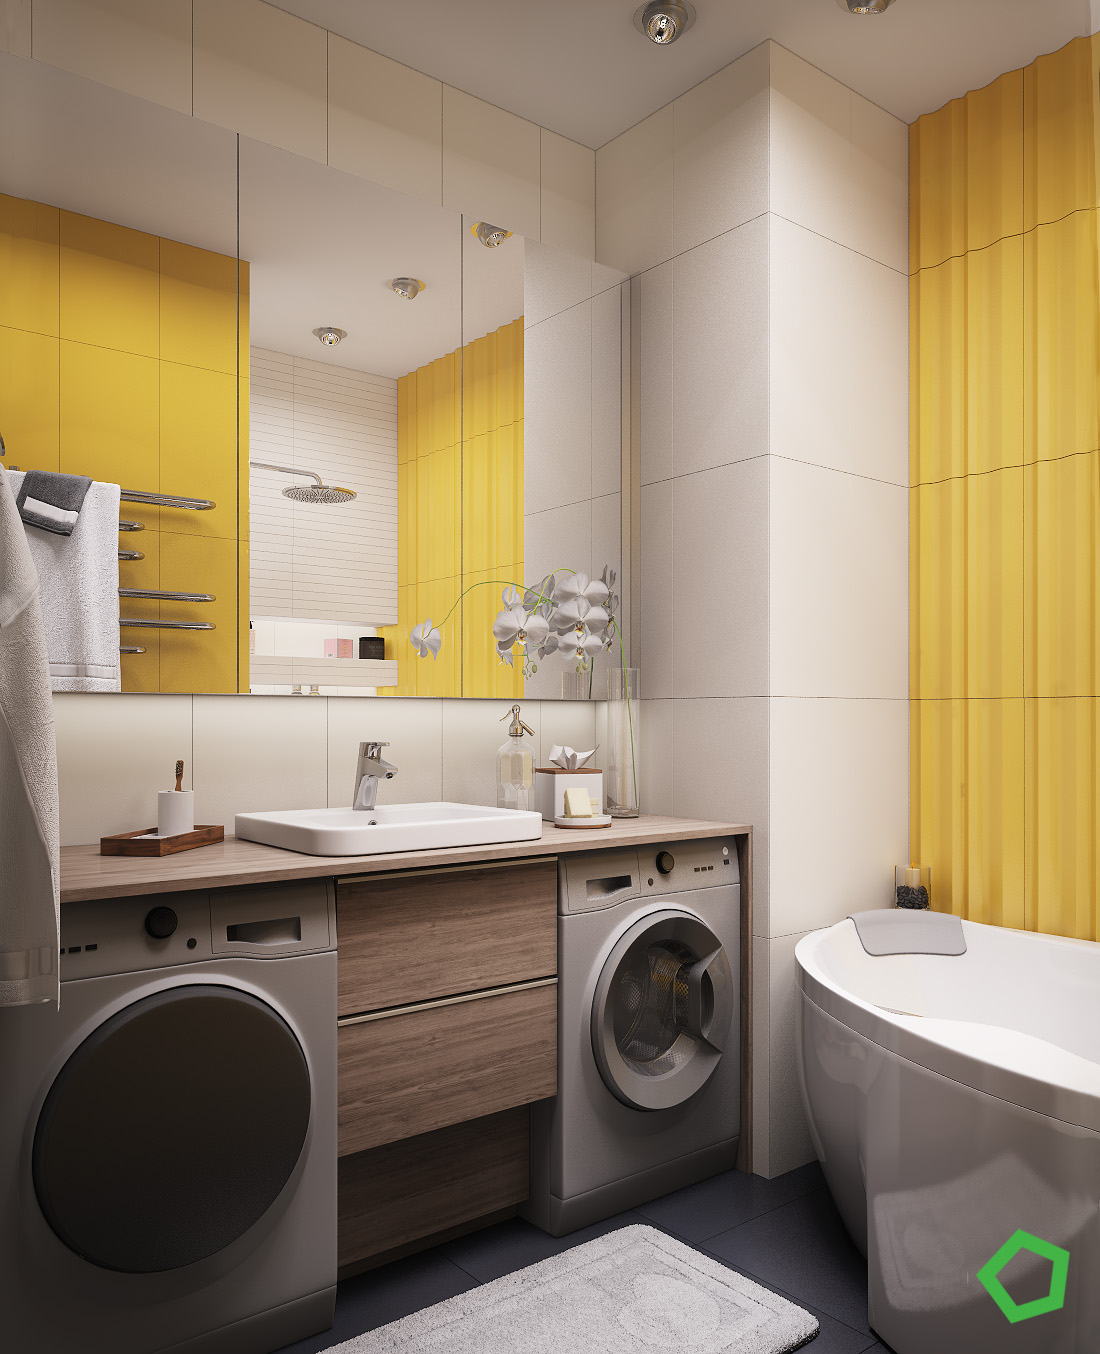 Cheerful Bright Bathroom Colors - 3 open layout interiors with yellow as the highlight color